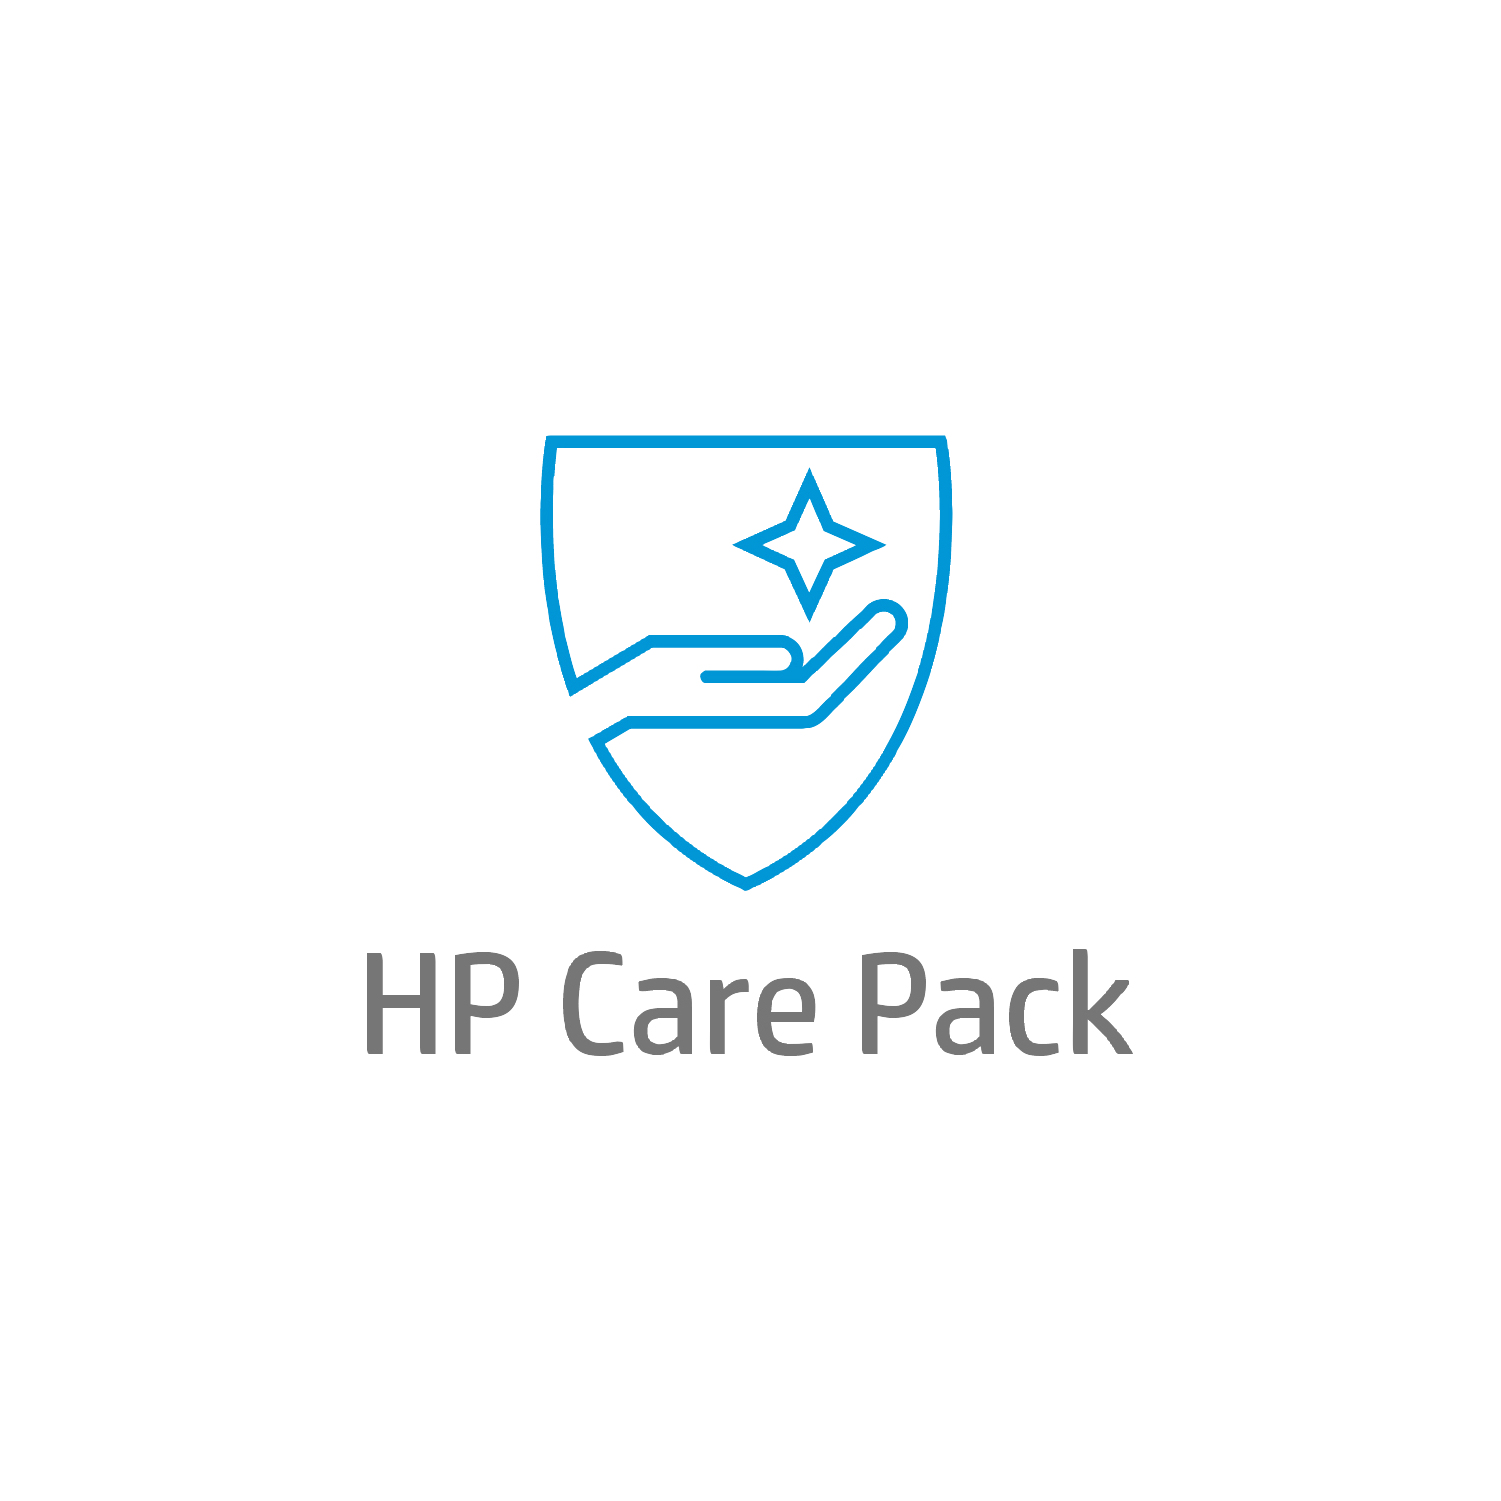 HP 3yr Priority Access PC 250+ Seats SVC, DesignJet 4530, T1200HD MFP, T2300 MFP,HP 3yr Priority Access SVC For PPS PC Products U7C99E - C2000